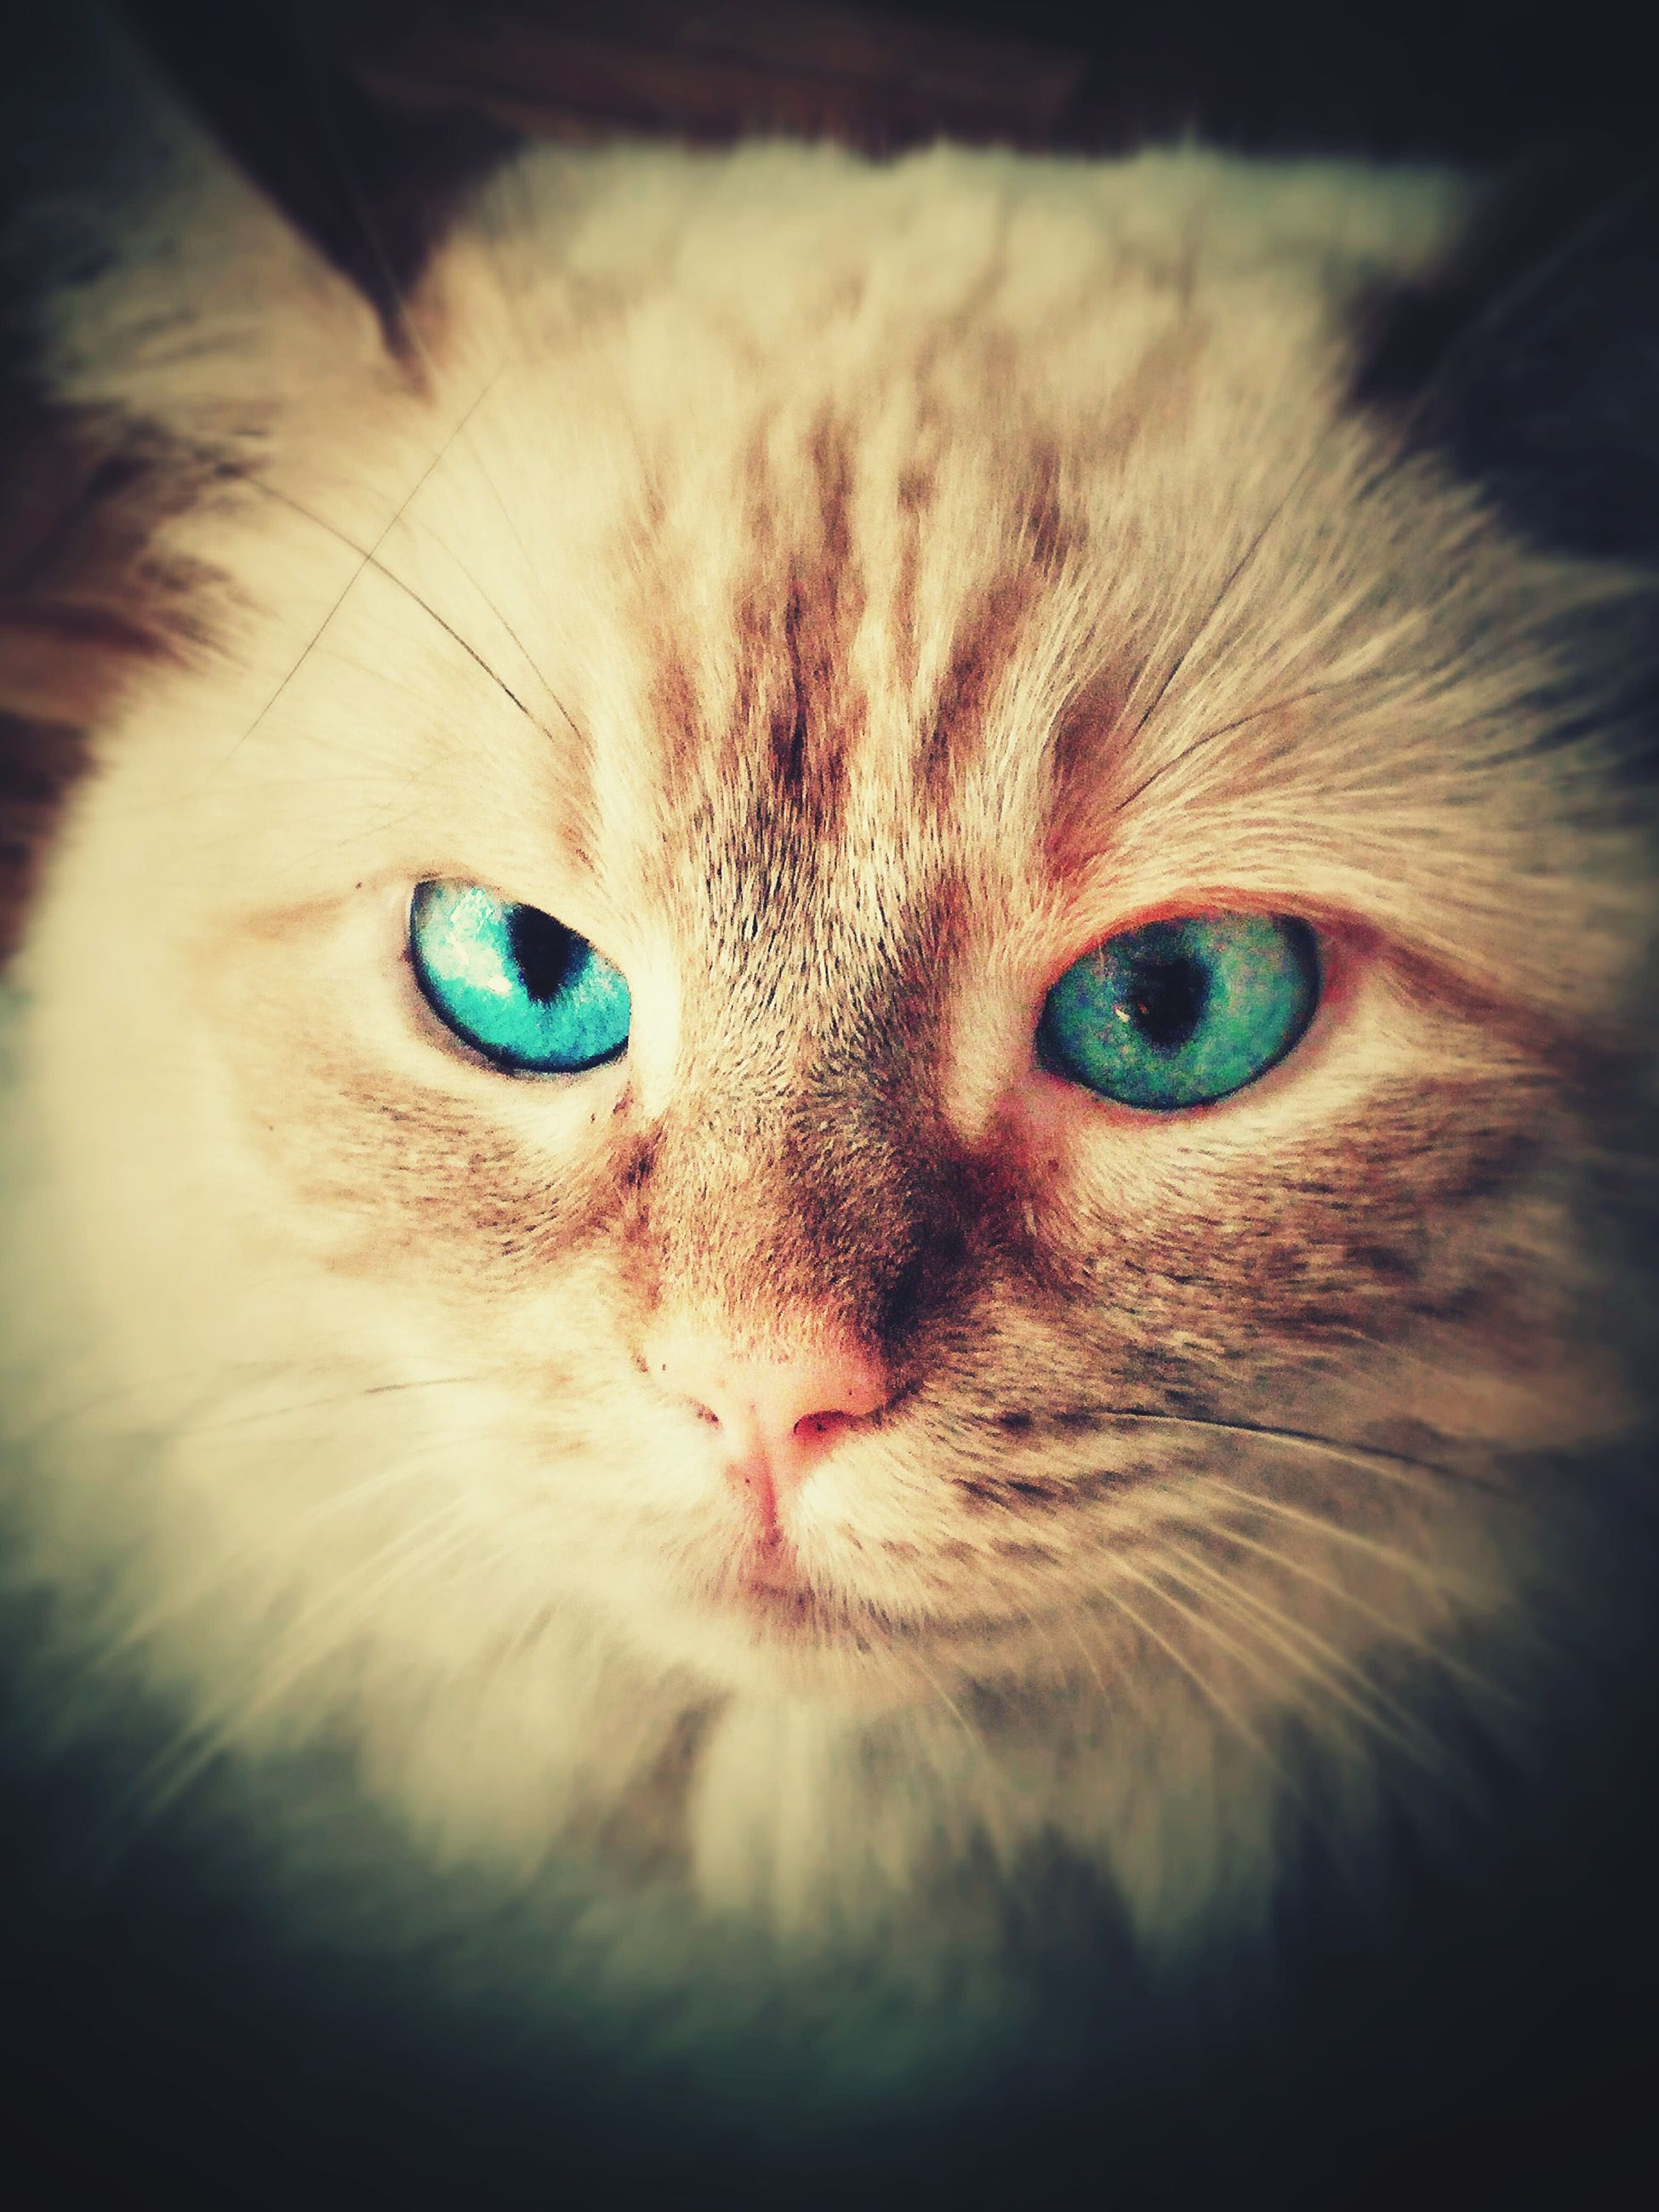 one animal, animal themes, pets, domestic cat, cat, domestic animals, portrait, looking at camera, animal eye, whisker, animal head, feline, close-up, mammal, staring, animal body part, indoors, alertness, front view, focus on foreground